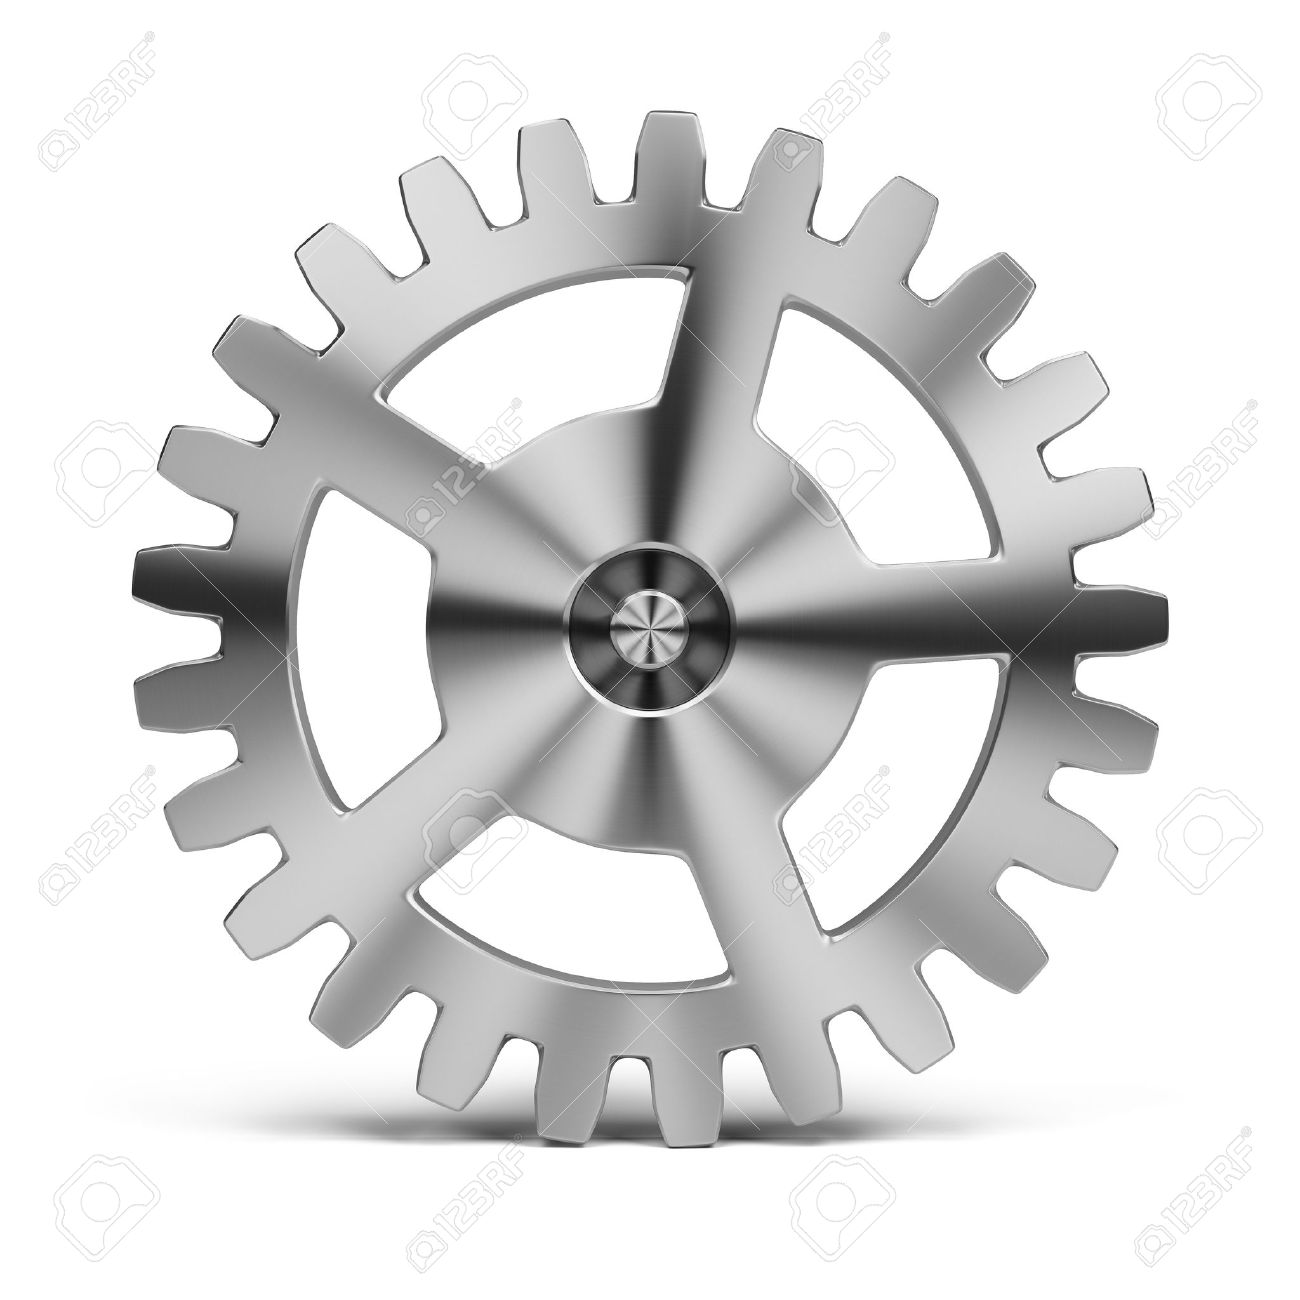 polished stainless steel gear  3d image  Isolated white background Stock Photo - 13254897